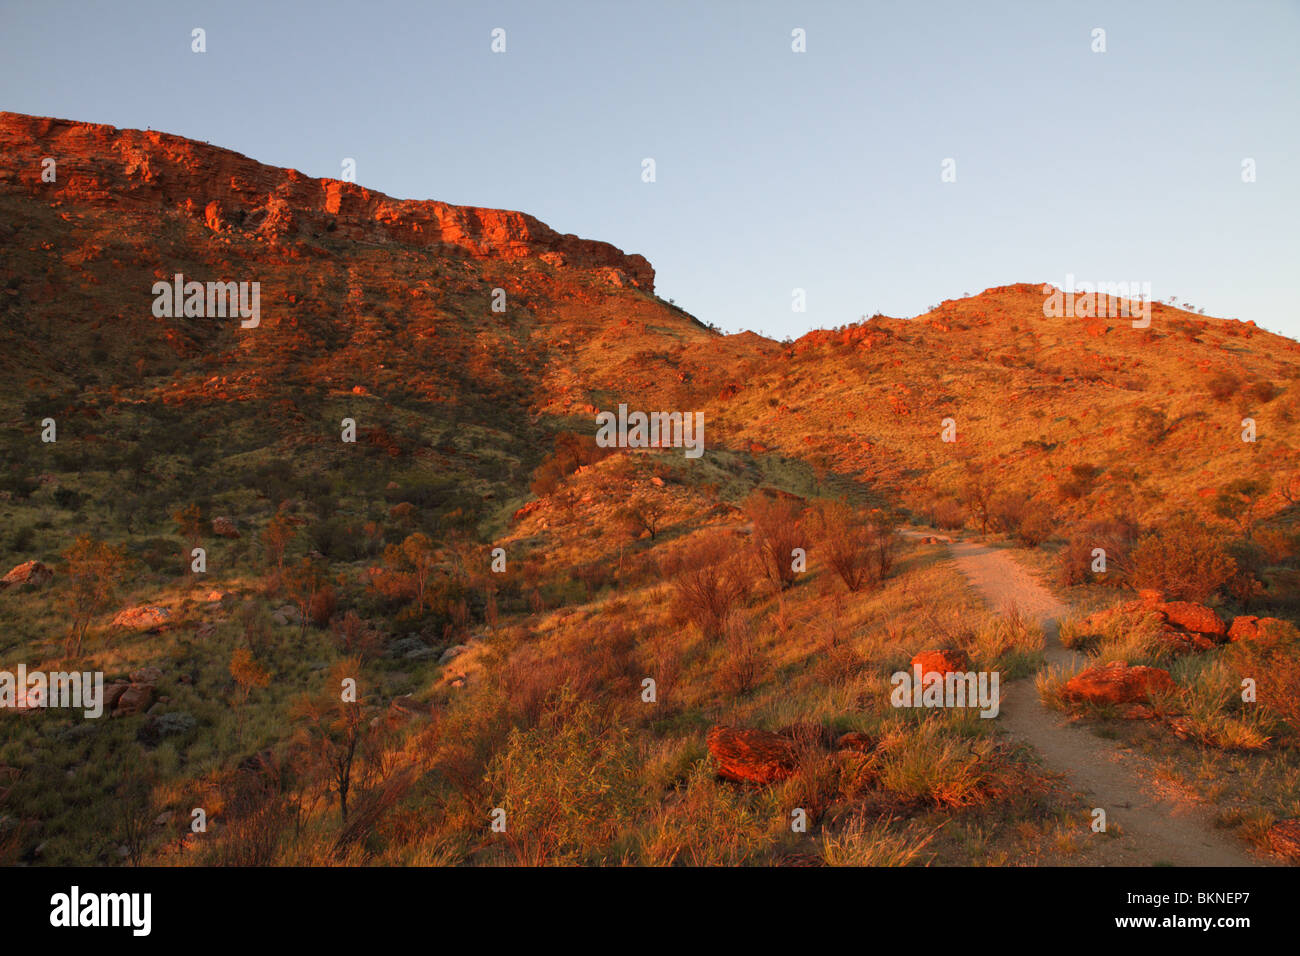 Path up to Mount Gillen in the West MacDonnell Range near Alice Springs. Northern Territory, Australia - Stock Image